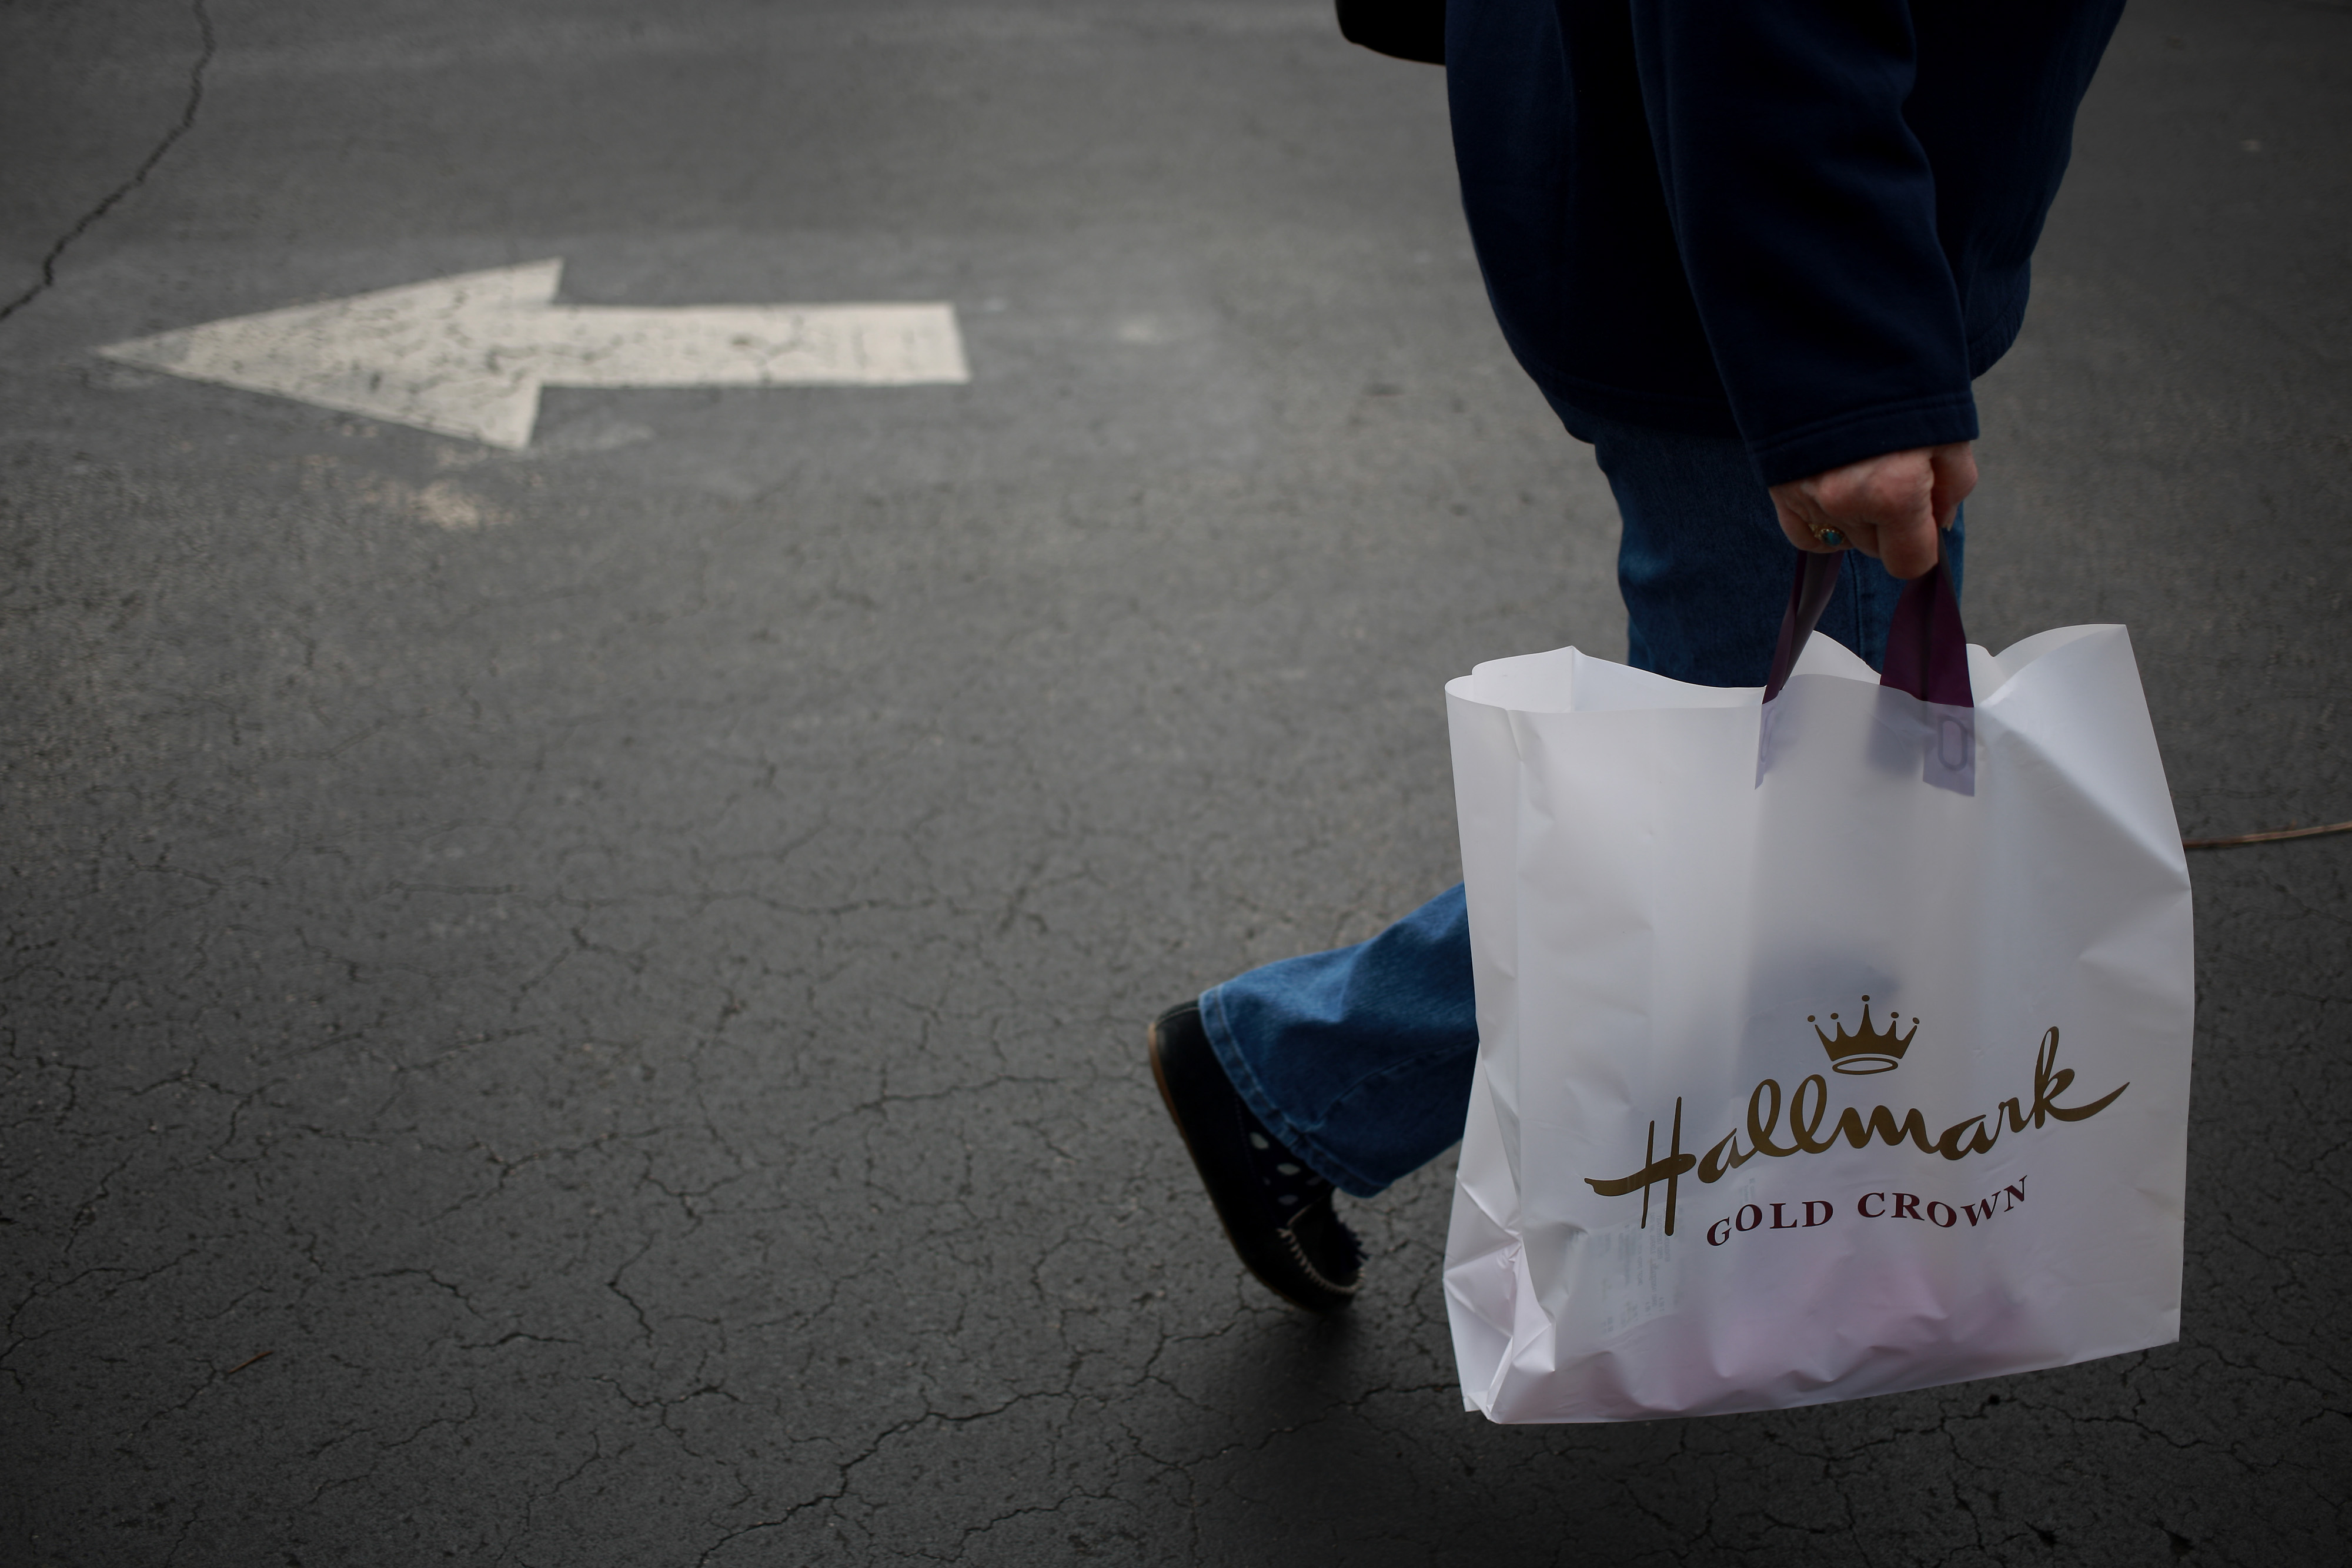 Inside A Hallmark Cards Inc. Gold Crown Shop Ahead Of Retail Sales Figures